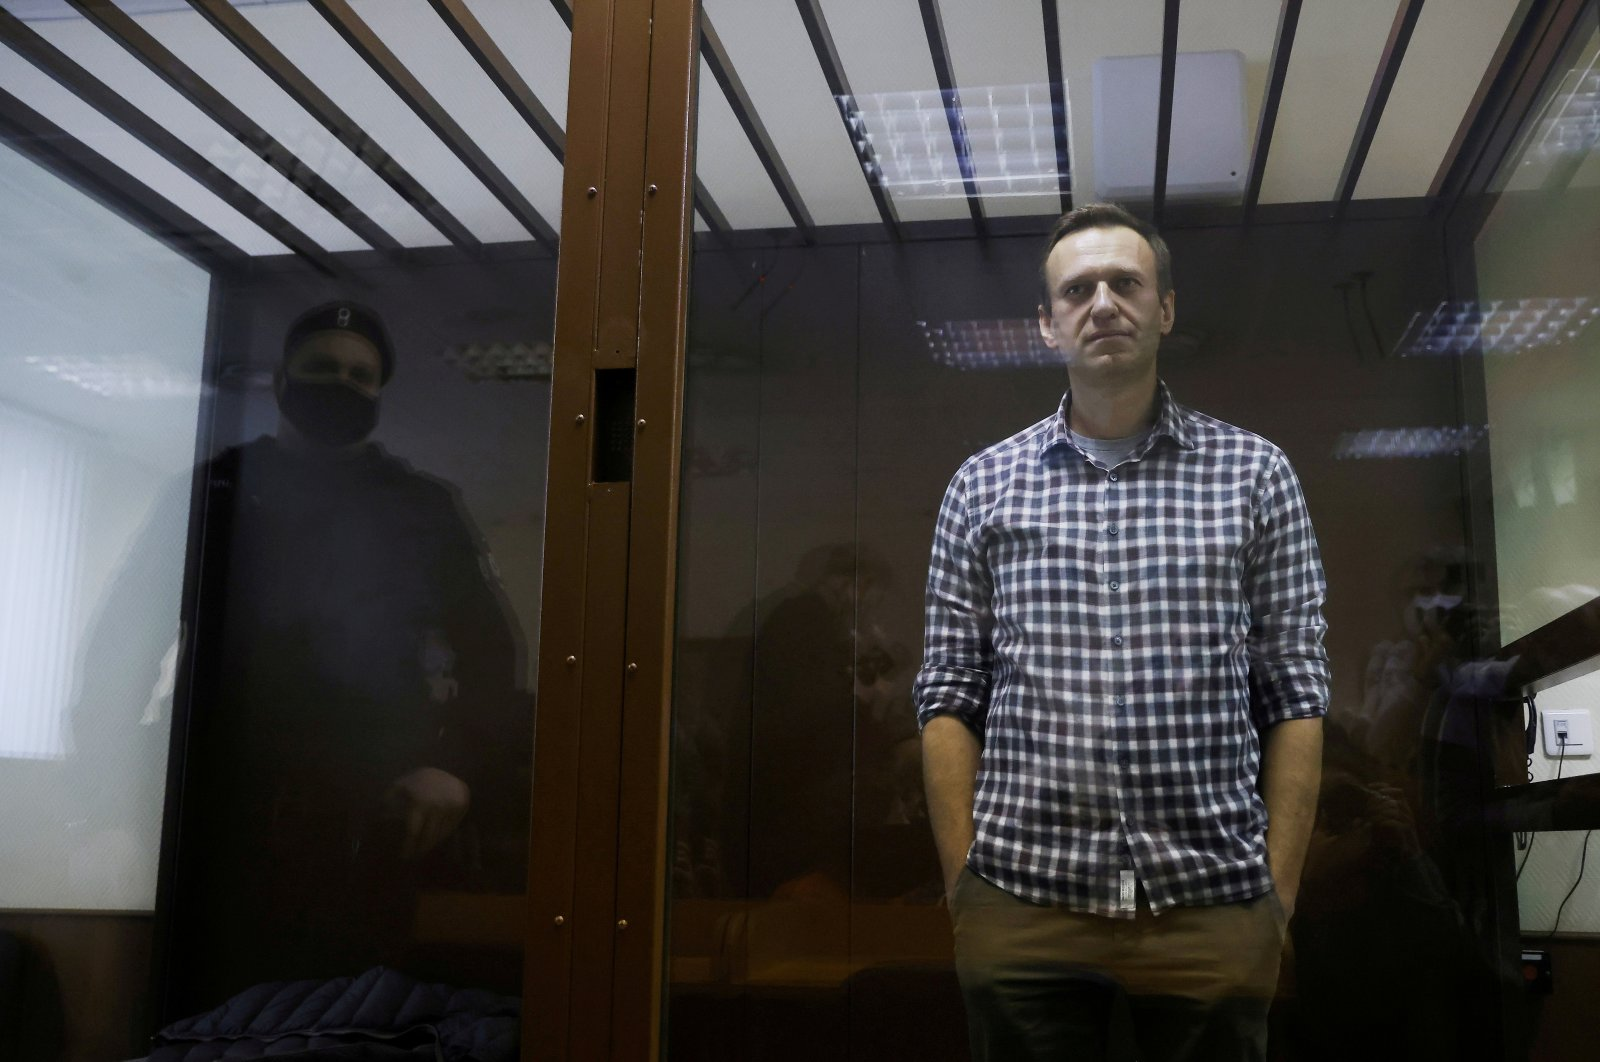 Russian opposition leader Alexei Navalny attends a hearing to consider an appeal against an earlier court decision to change his suspended sentence to a real prison term, Moscow, Russia Feb. 20, 2021. (Reuters Photo)